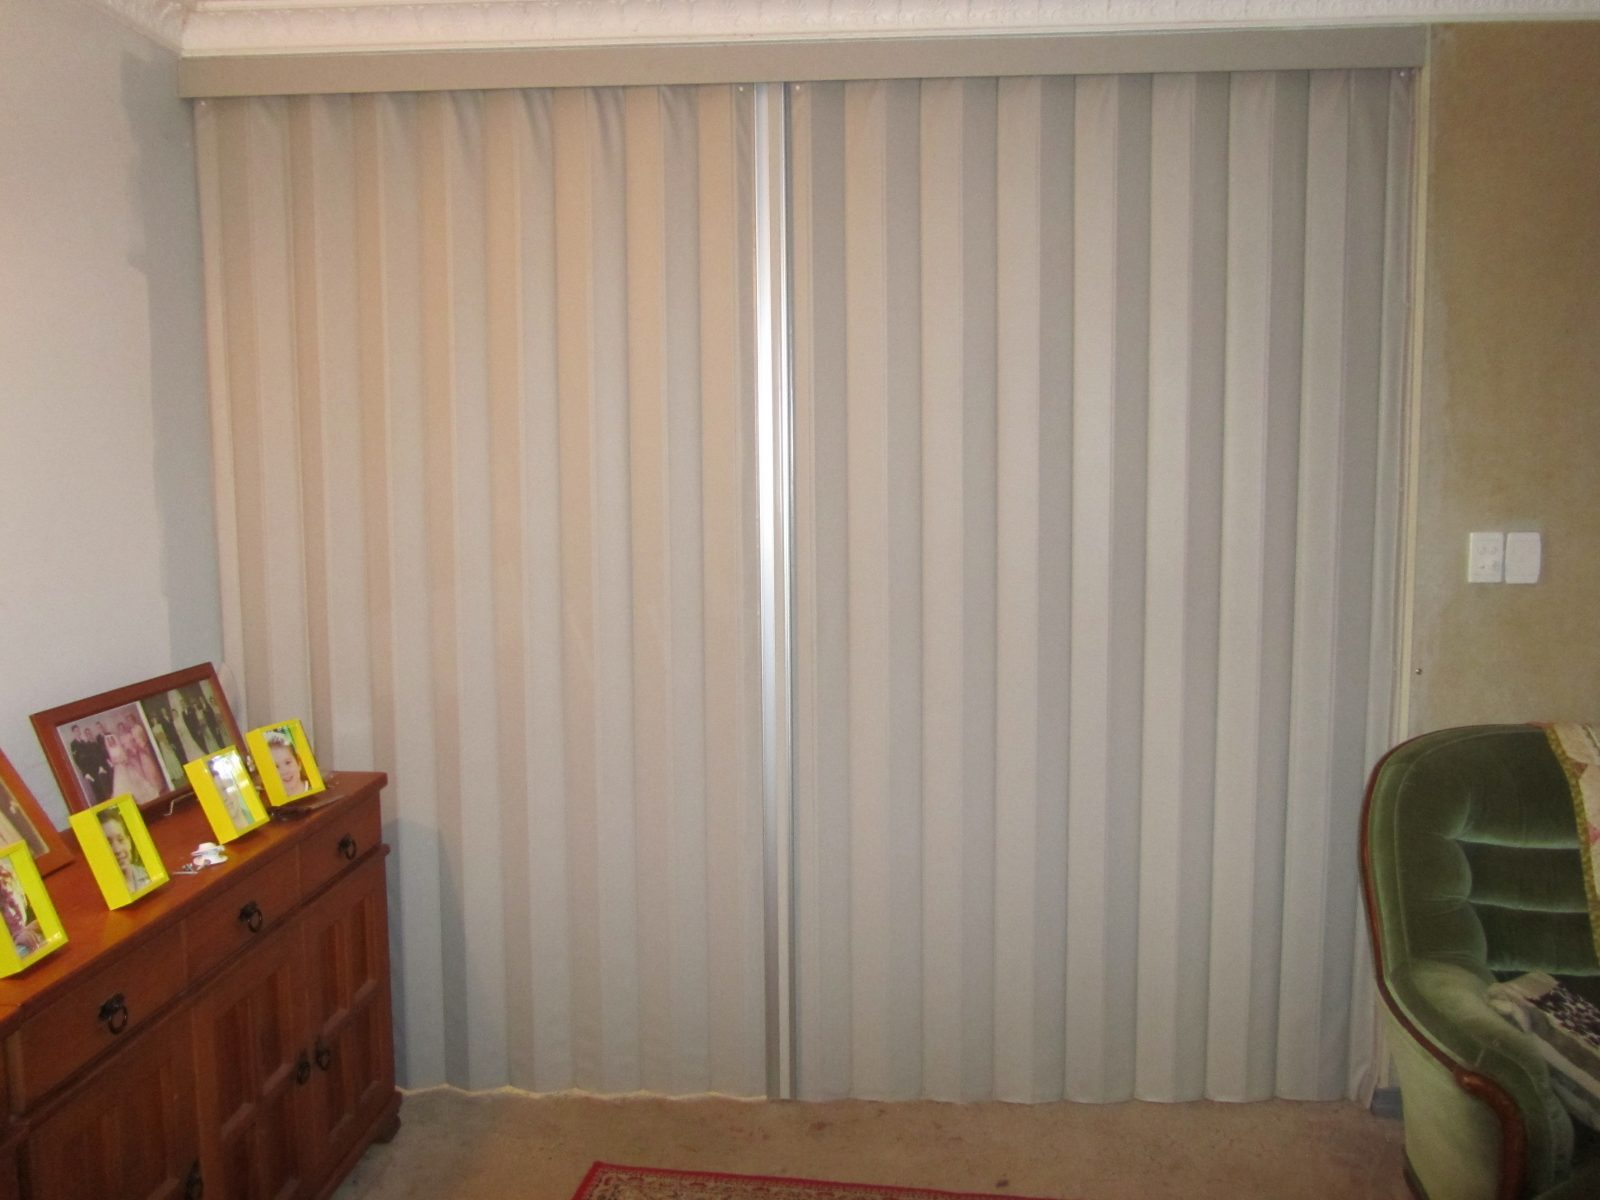 Folding Door Sound : Townsville folding concertina doors acoustic sound rated